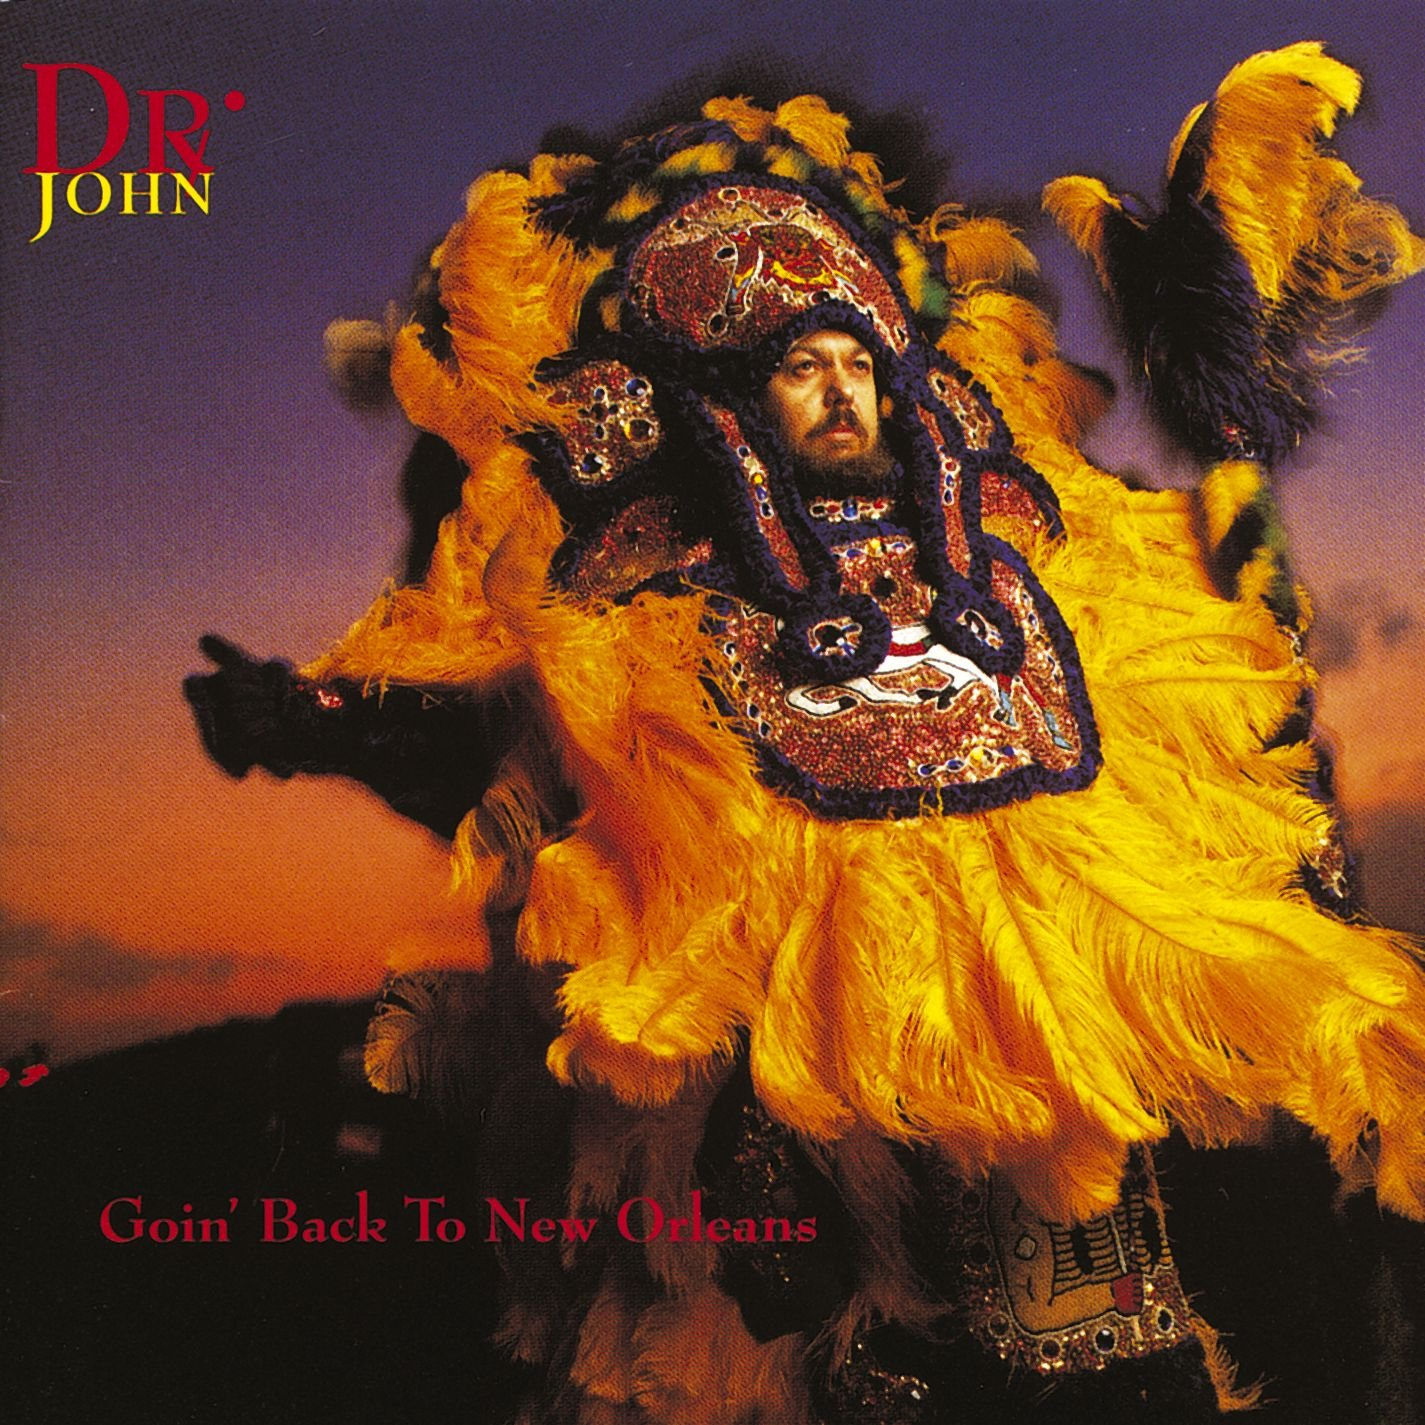 Dr. John - Goin' Back To New Orleans (1992) [FLAC] Download